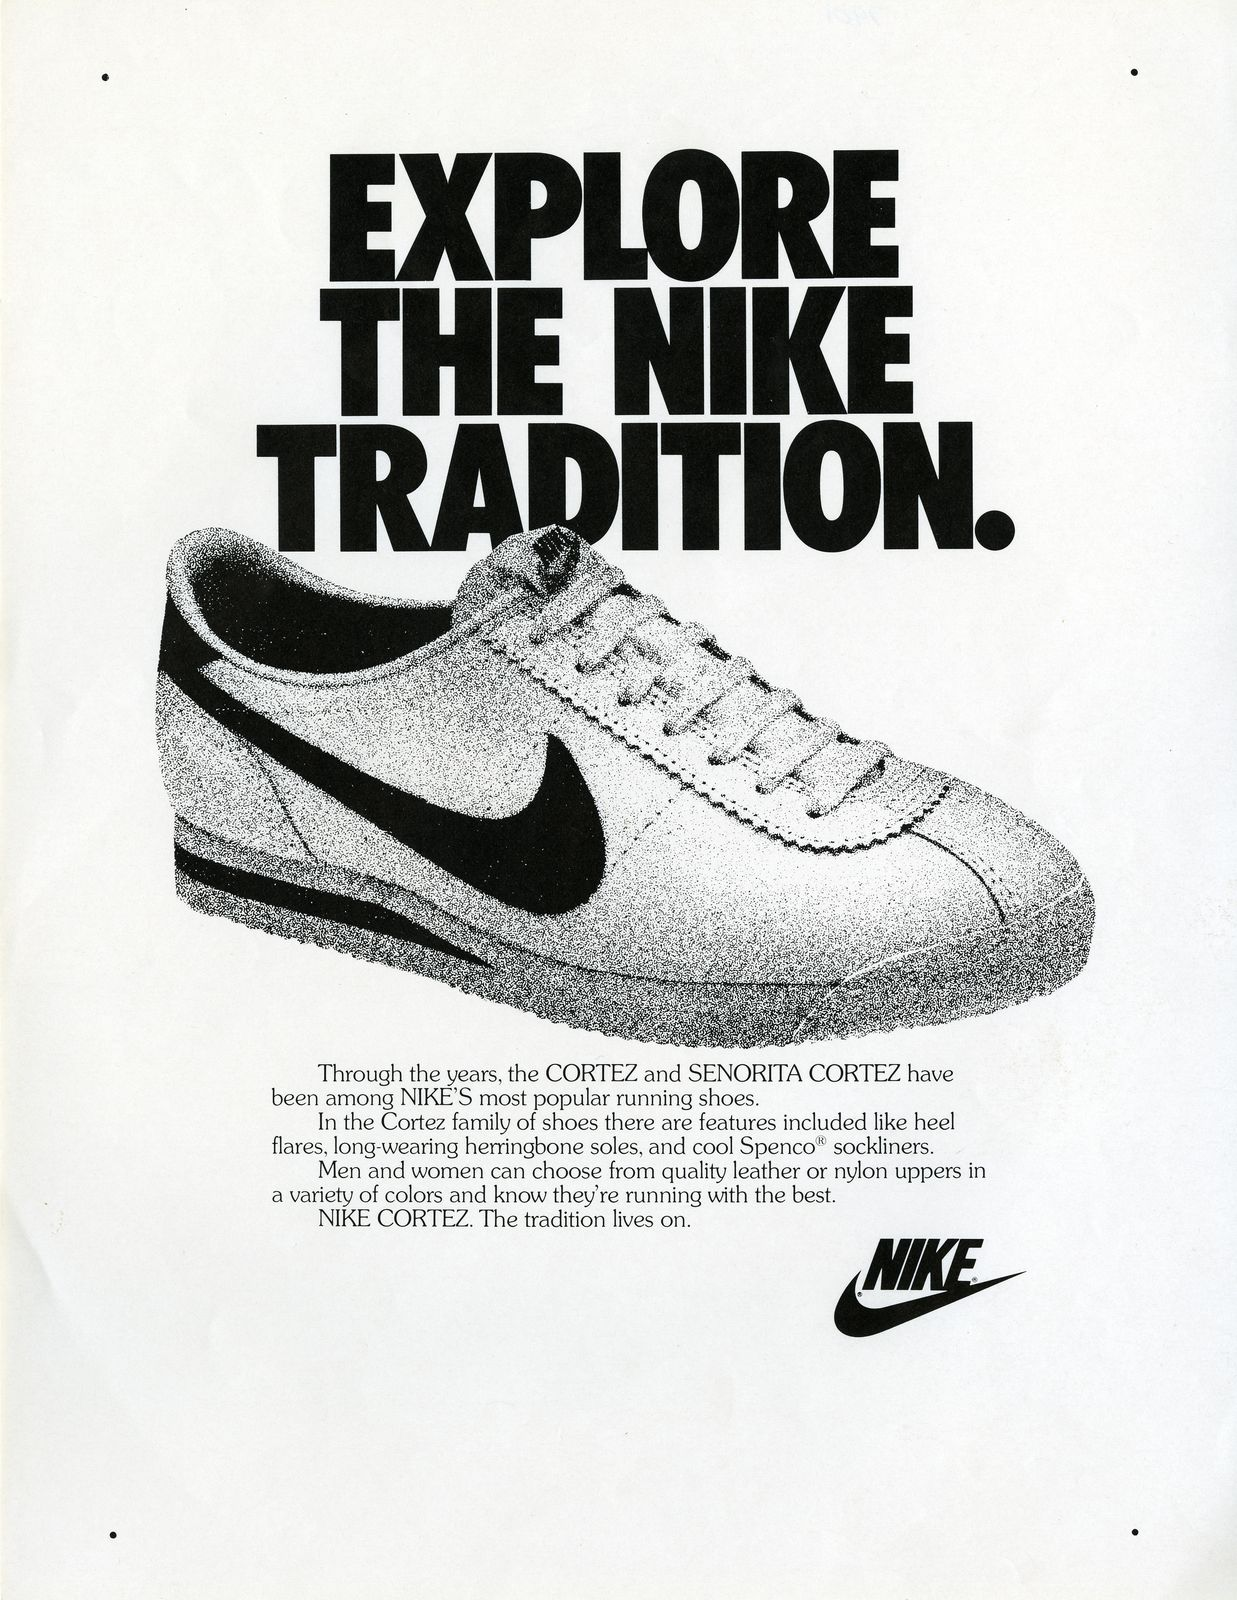 Bill Bowerman: Nike's Original Innovator. Download Image: LO · HI